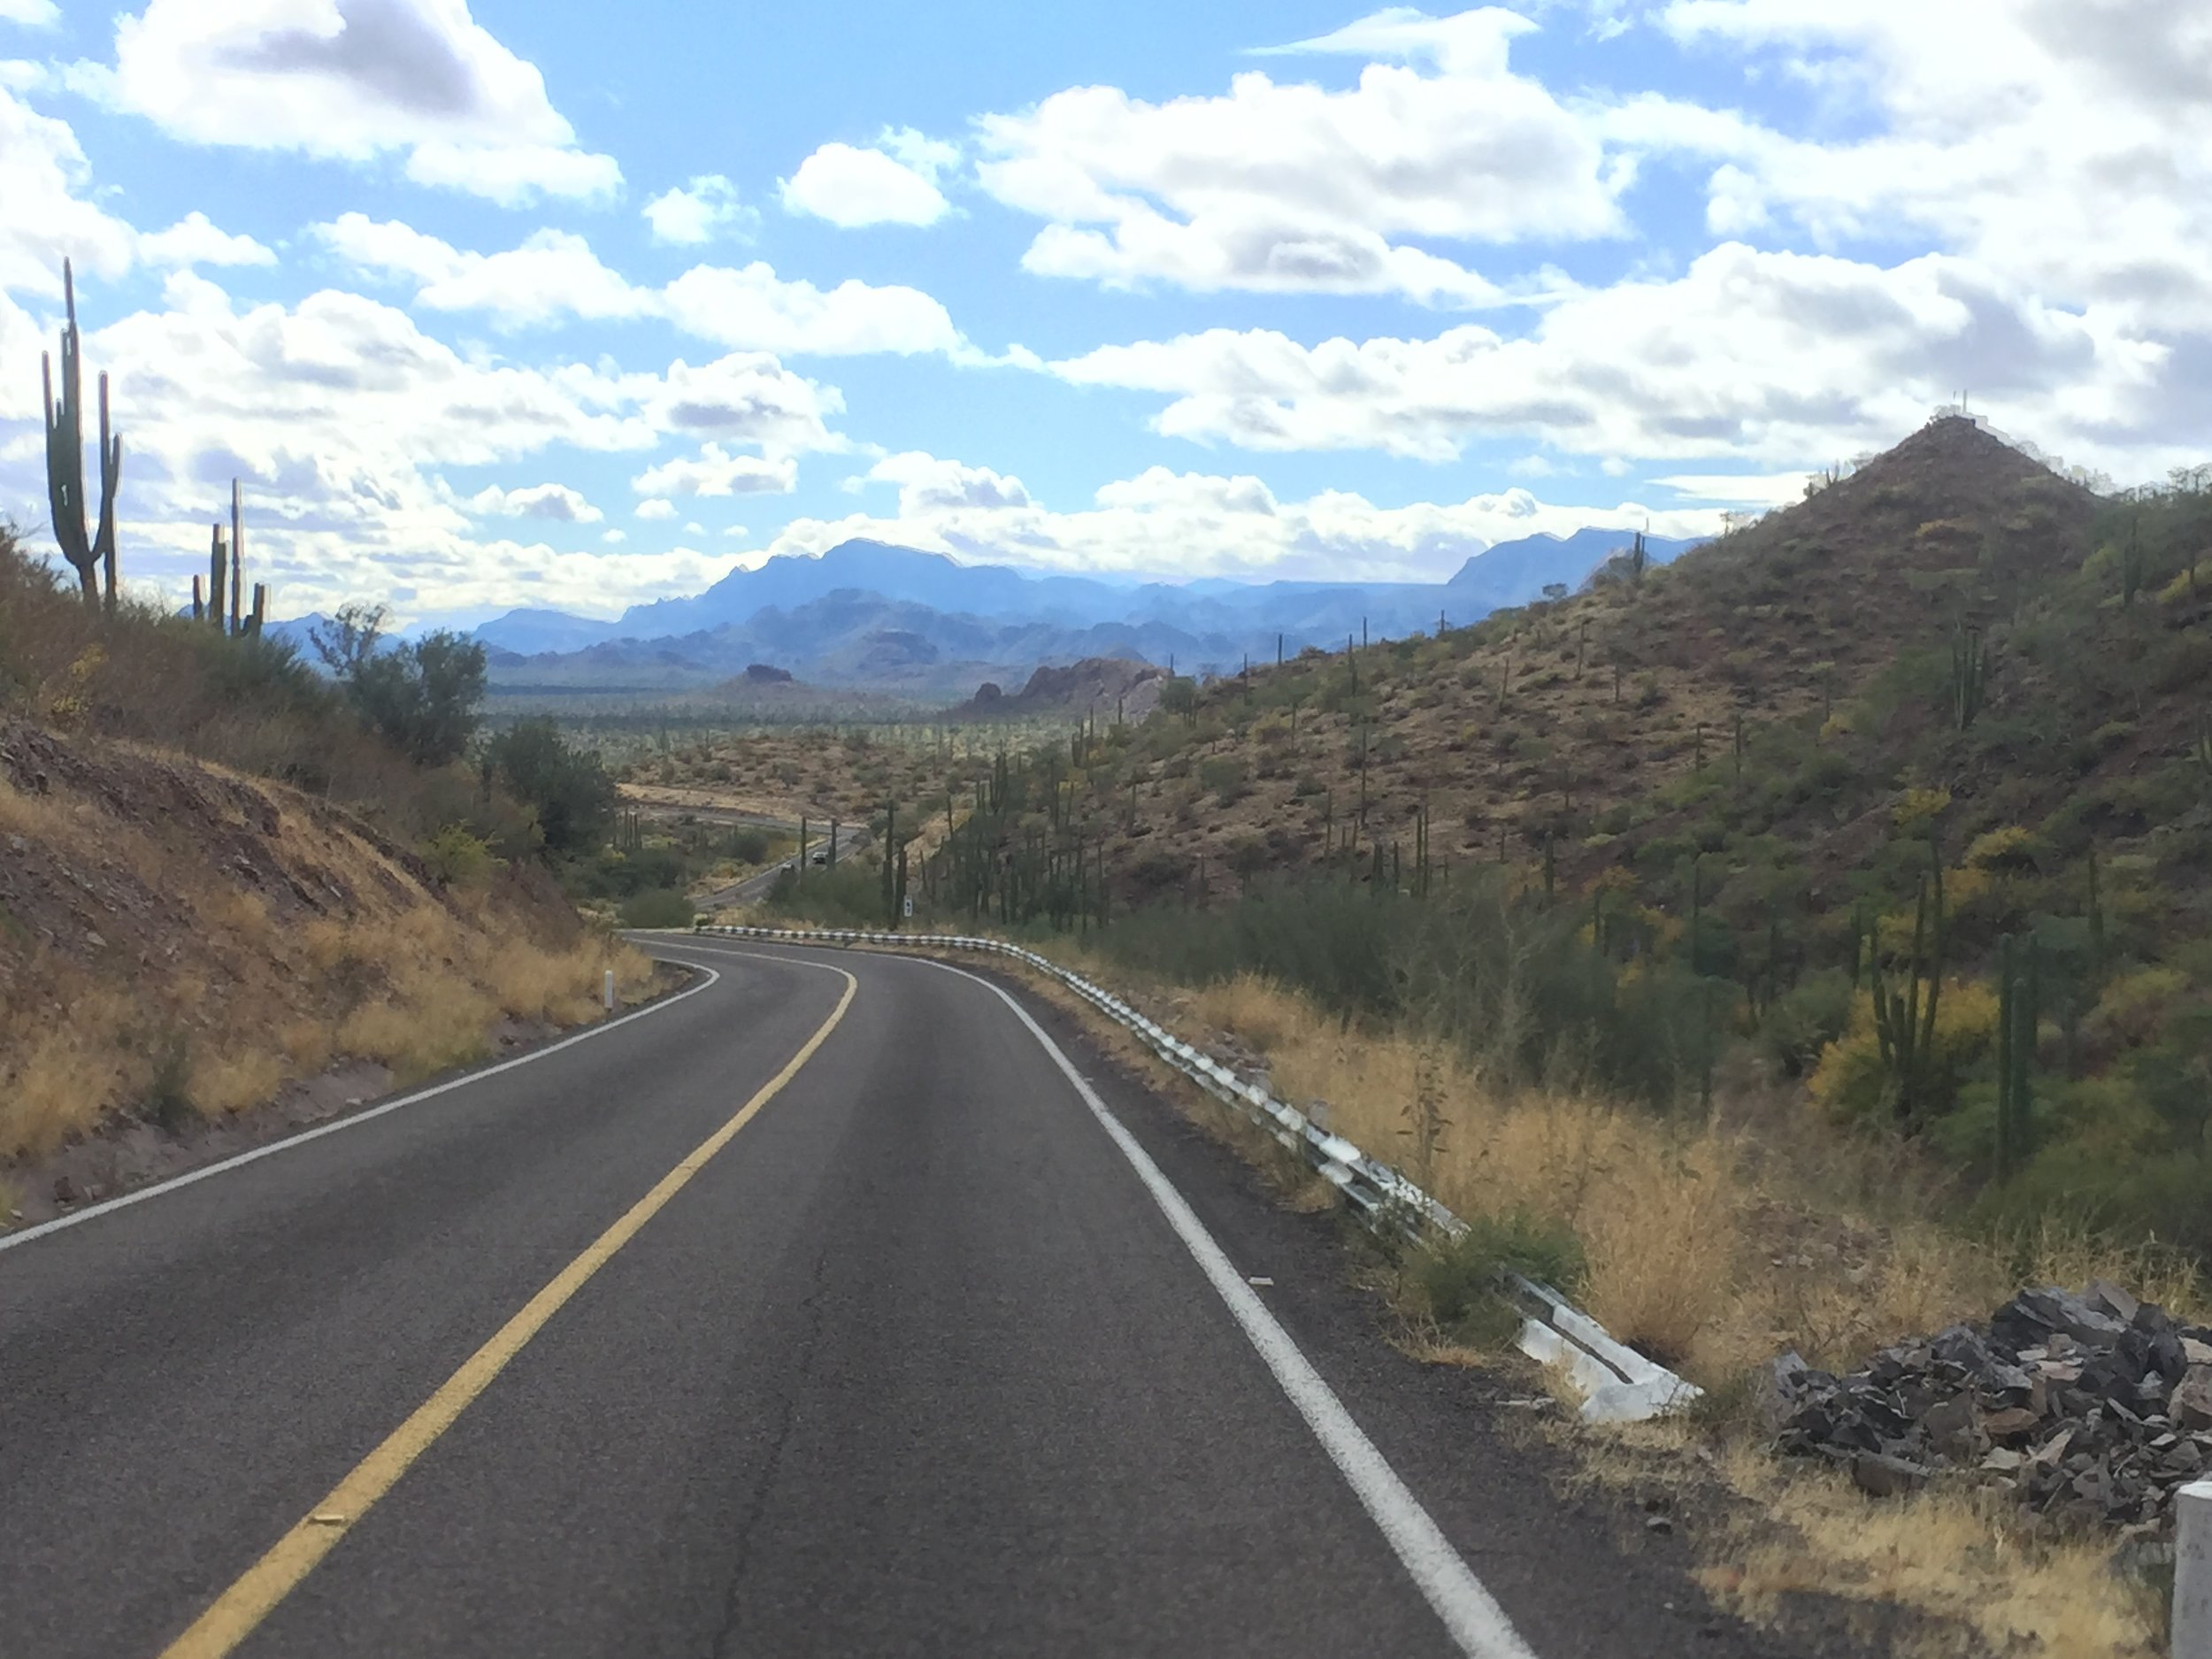 Mexico 1 is a great road. Just look at those mountains!